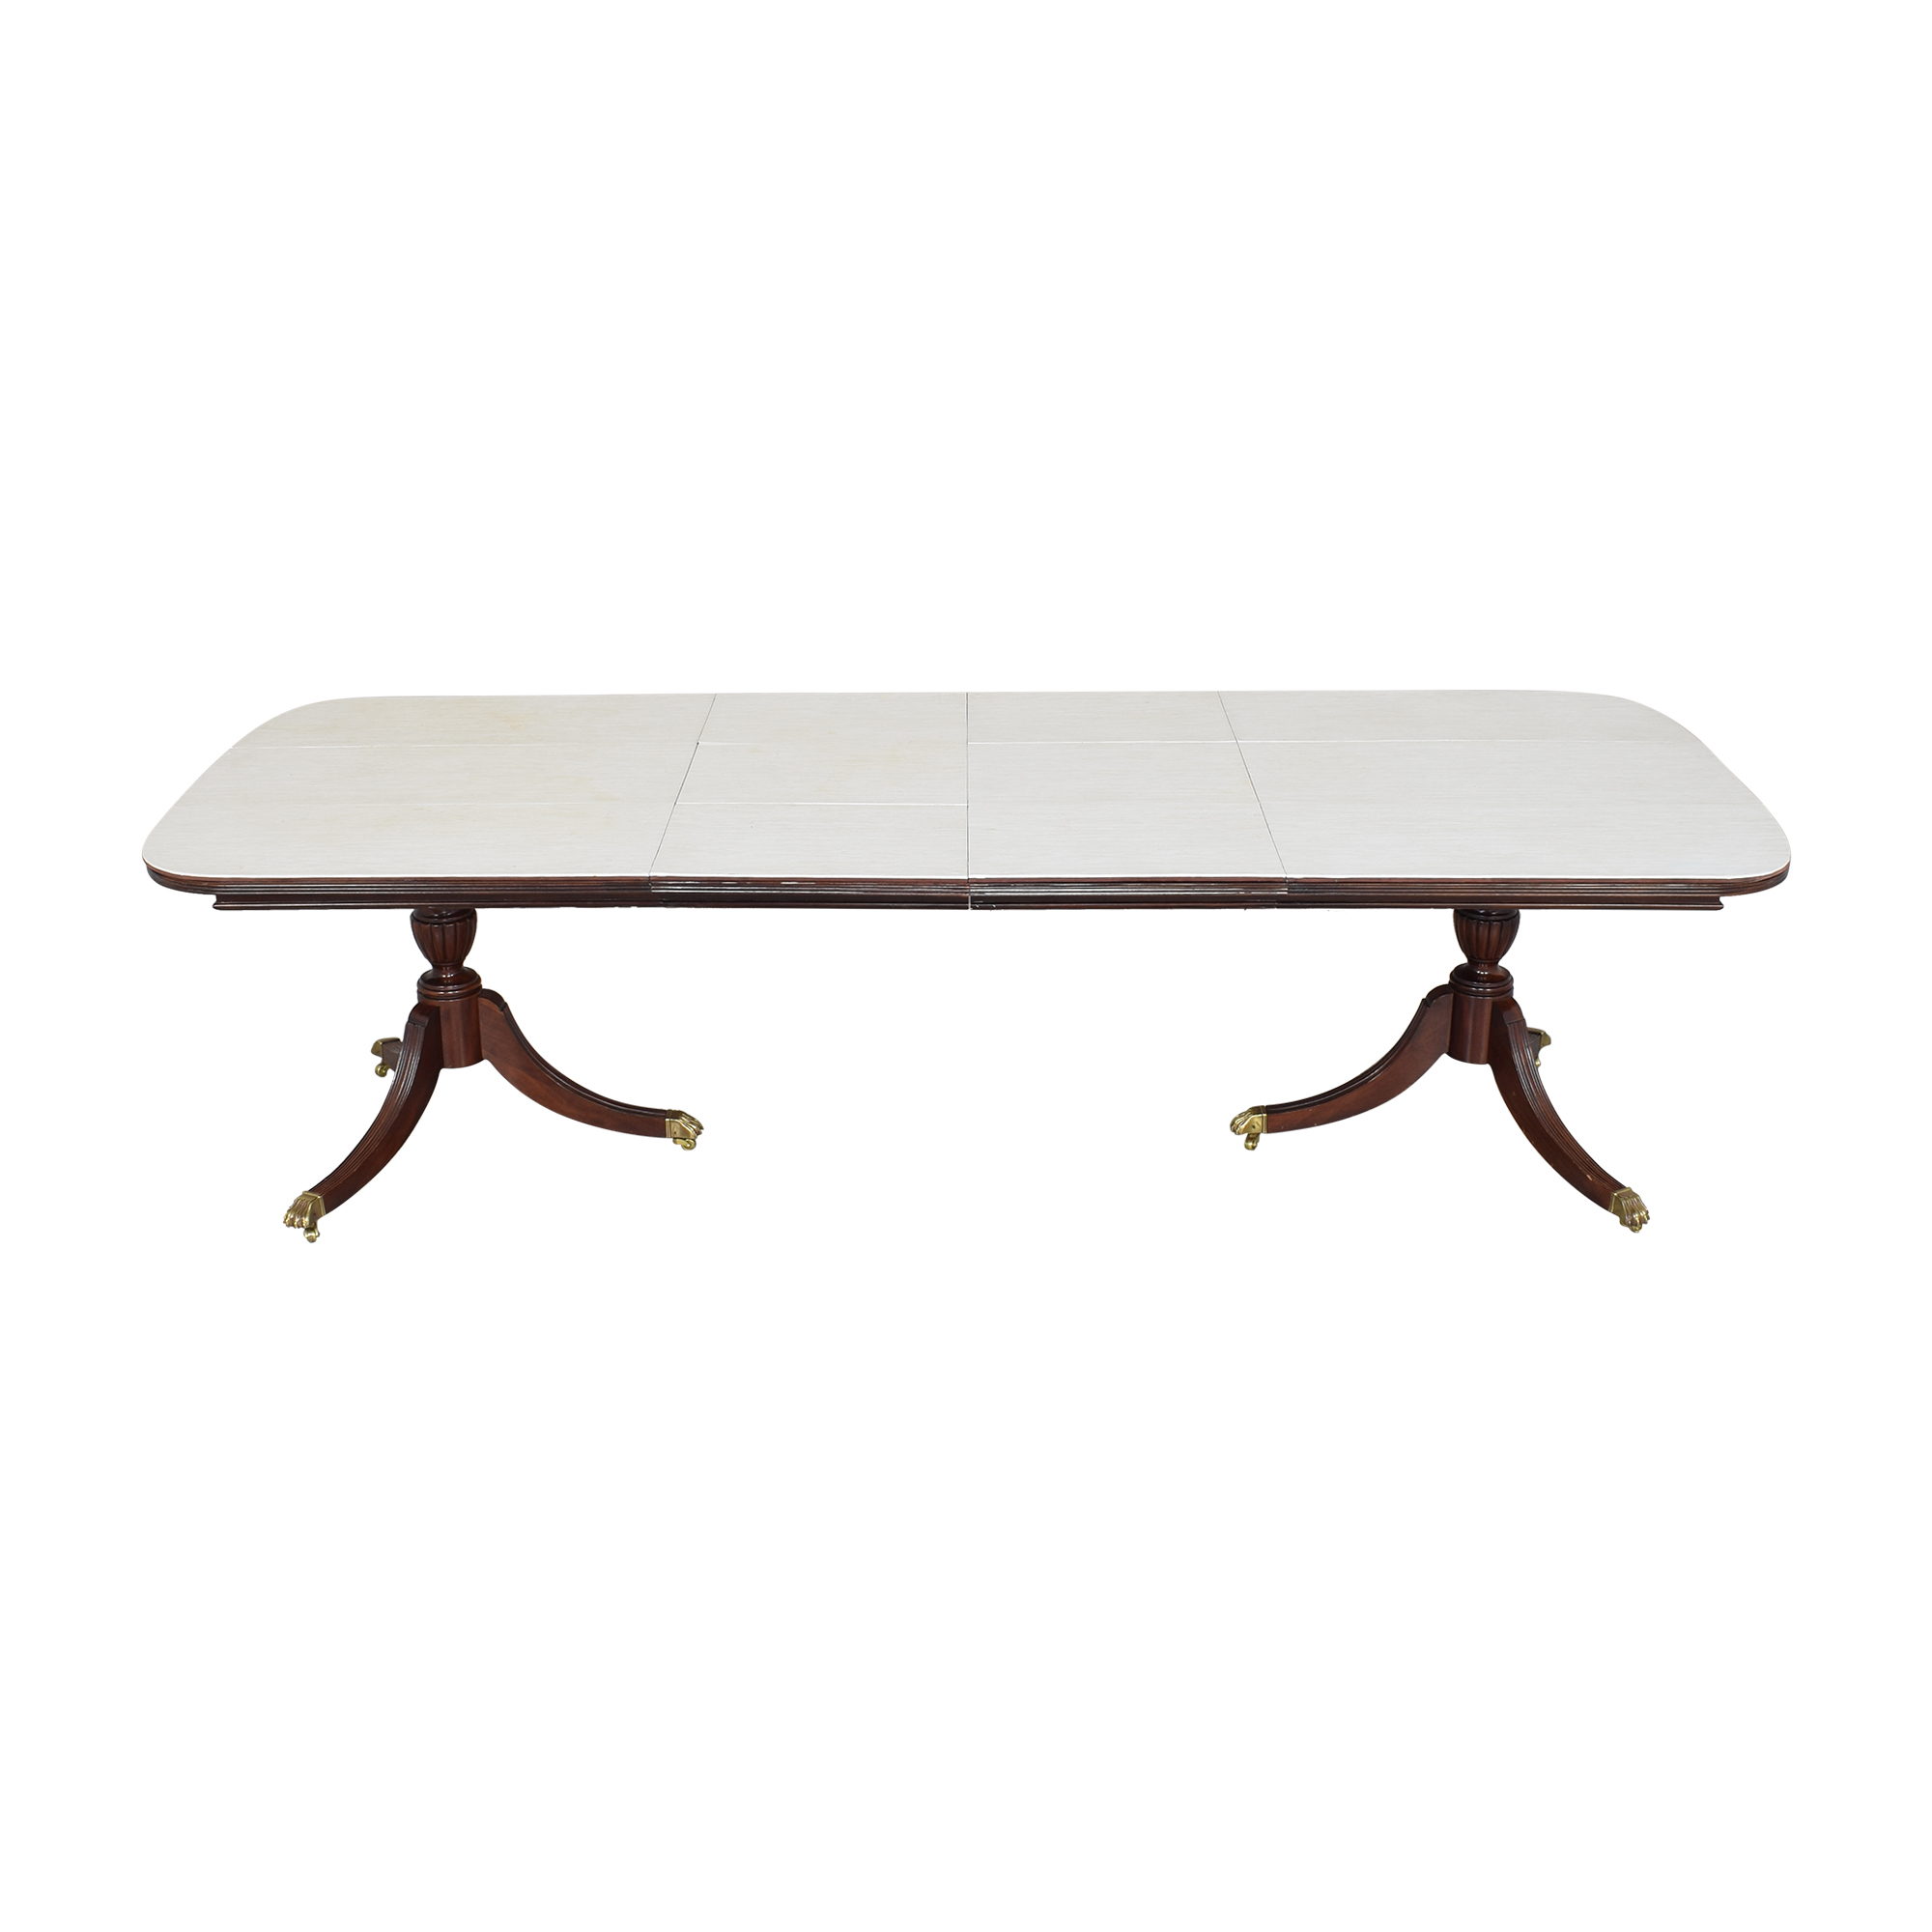 Thomasville Thomasville Extendable Dining Table pa